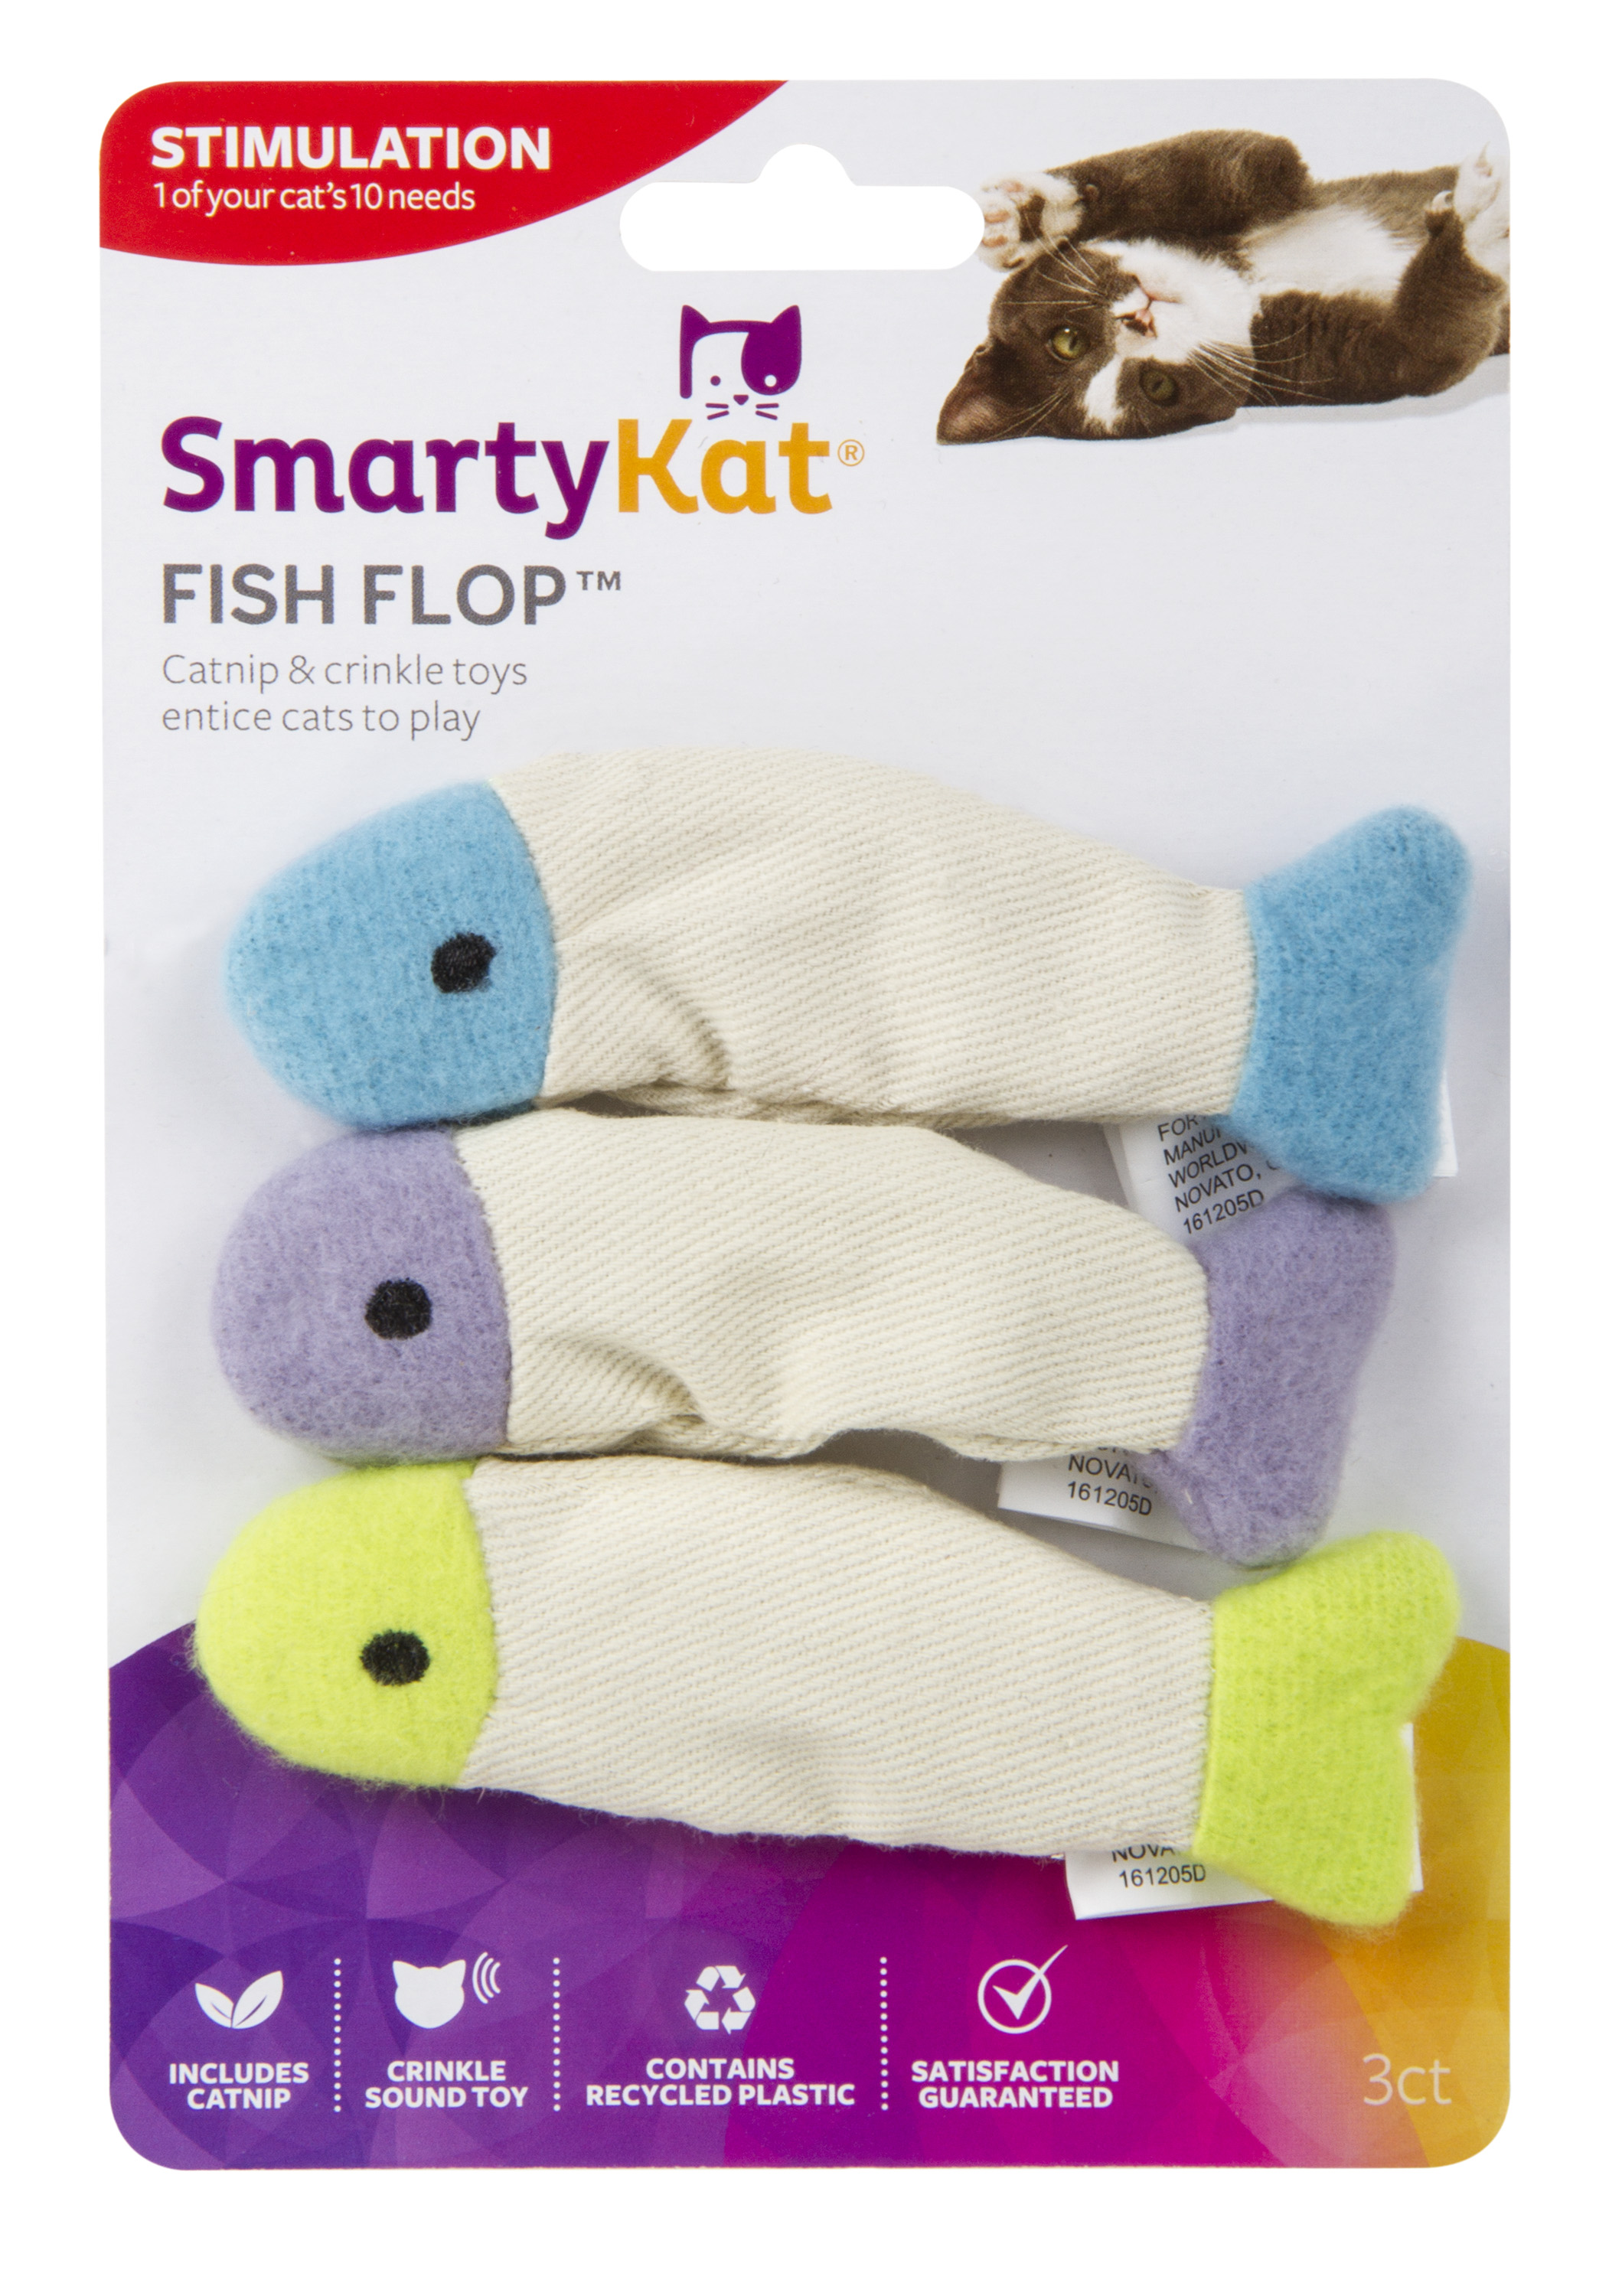 SmartyKat Fish Flop Crinkle Catnip Cat Toy, 3 Count by Worldwise